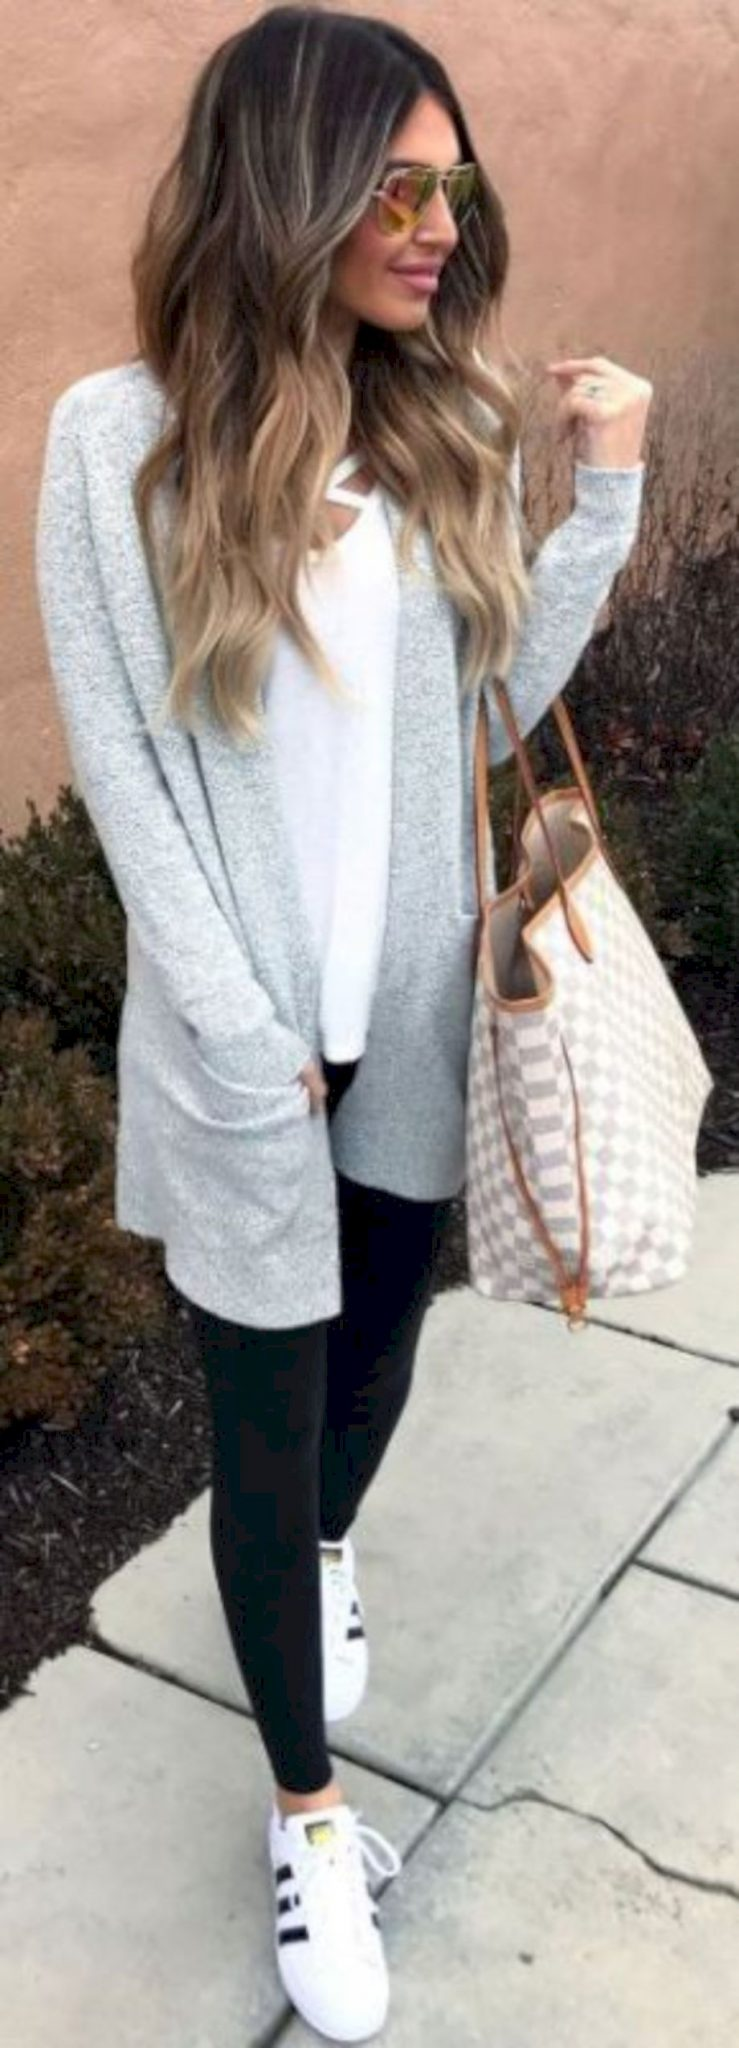 Cardigan outfit 10